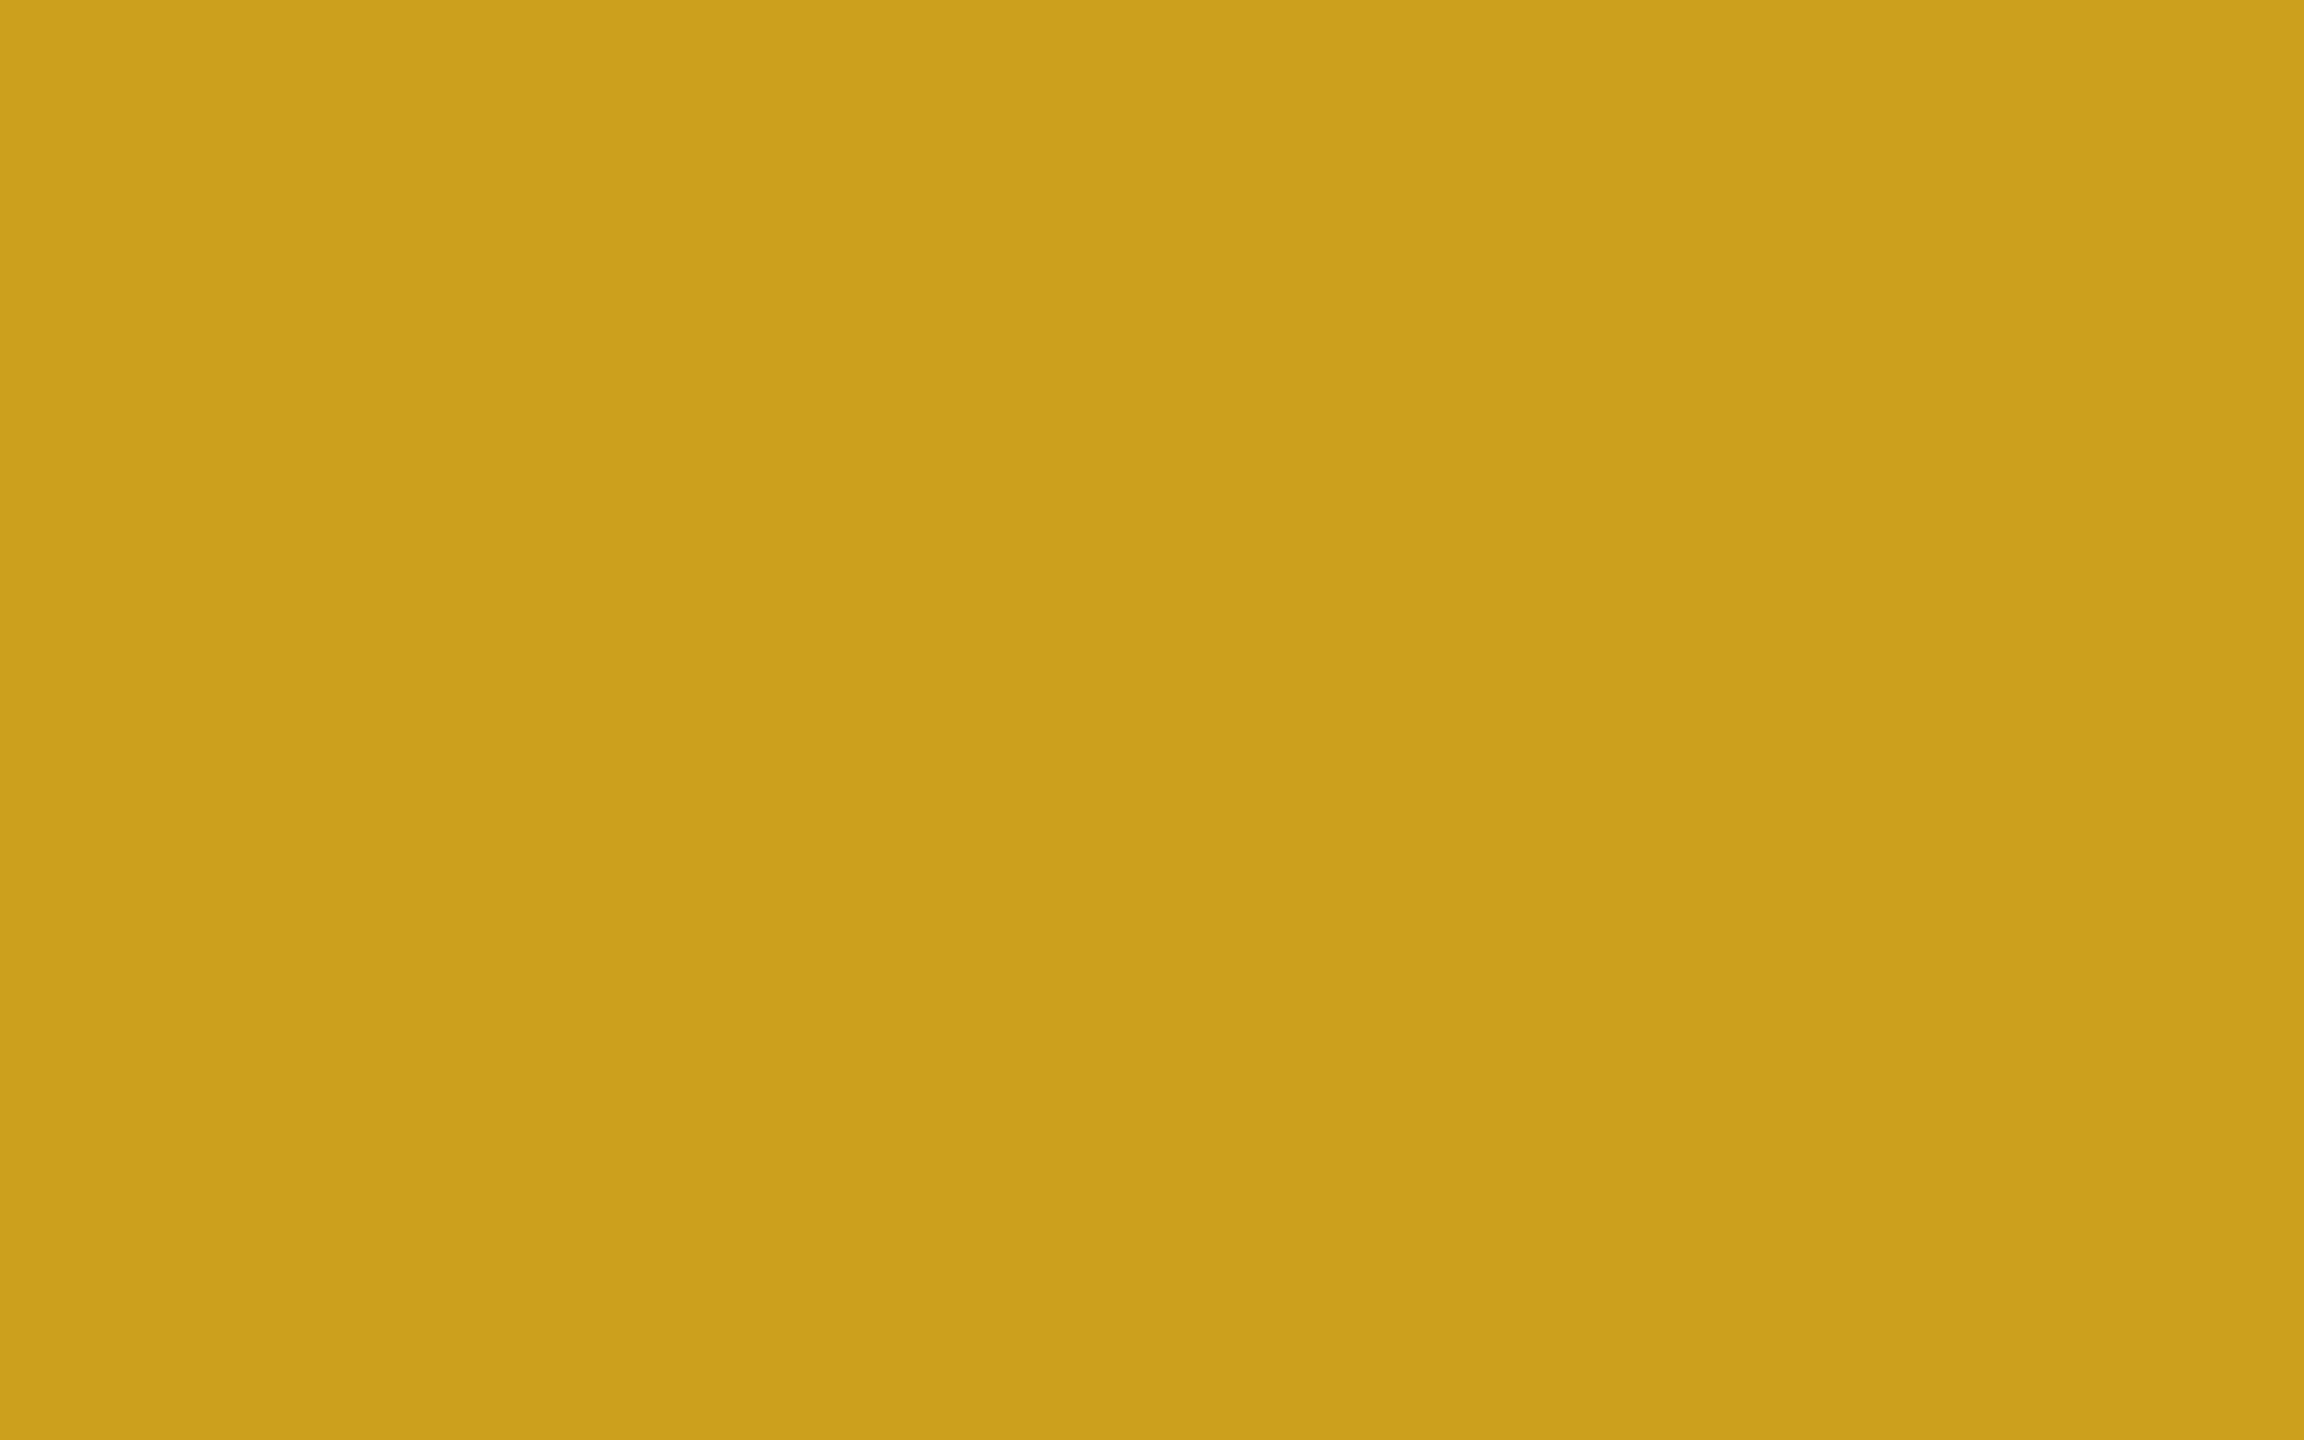 2304x1440 Lemon Curry Solid Color Background